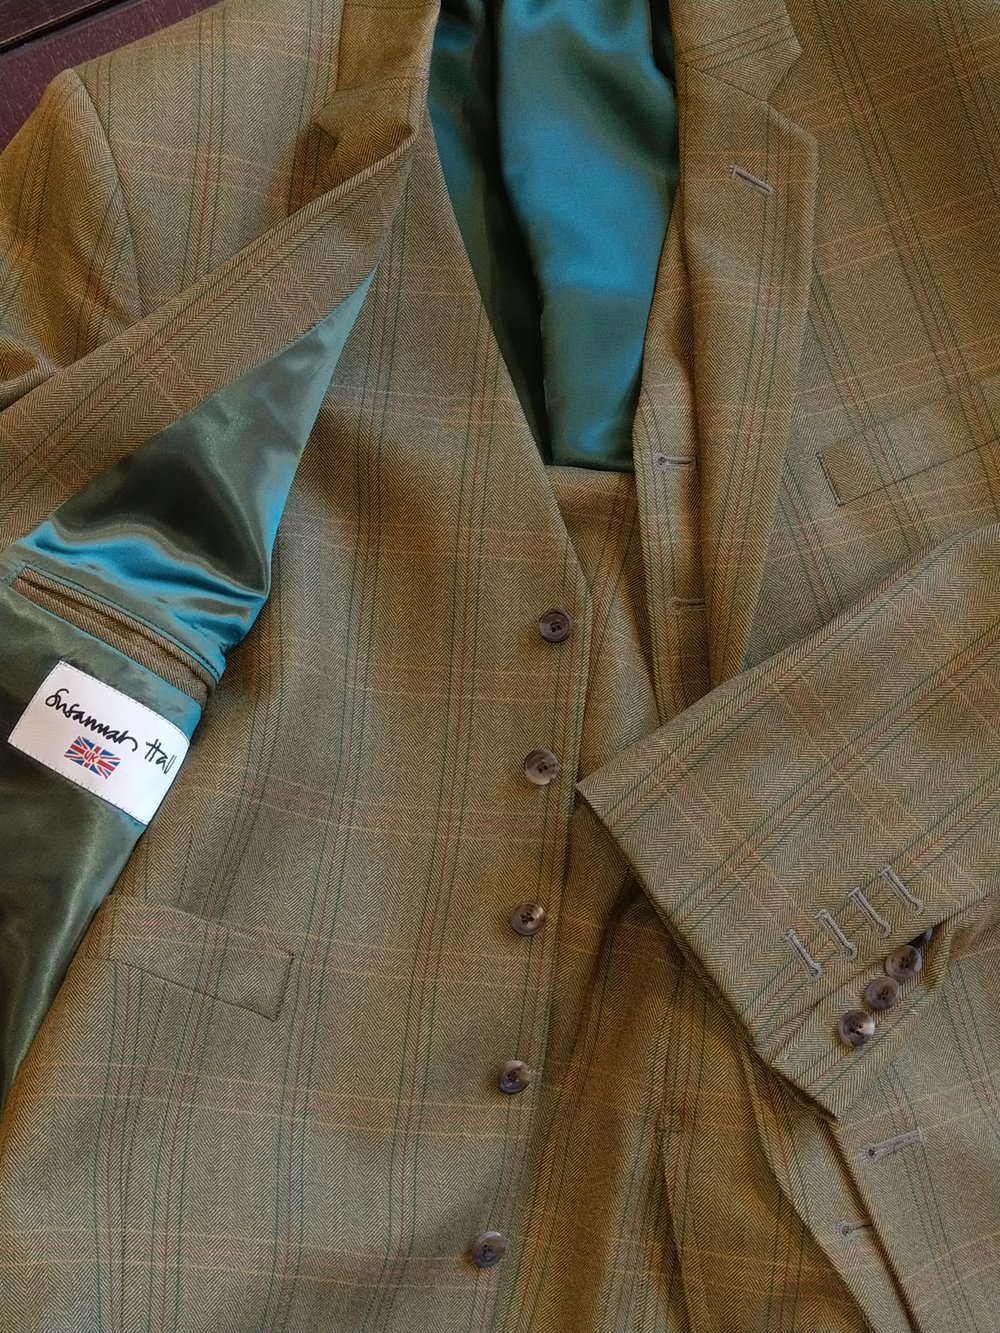 green-tweed-susannah-hall-tailor-bateman-ogden-lightweight-made-uk-britain-three-piece-suit.jpg